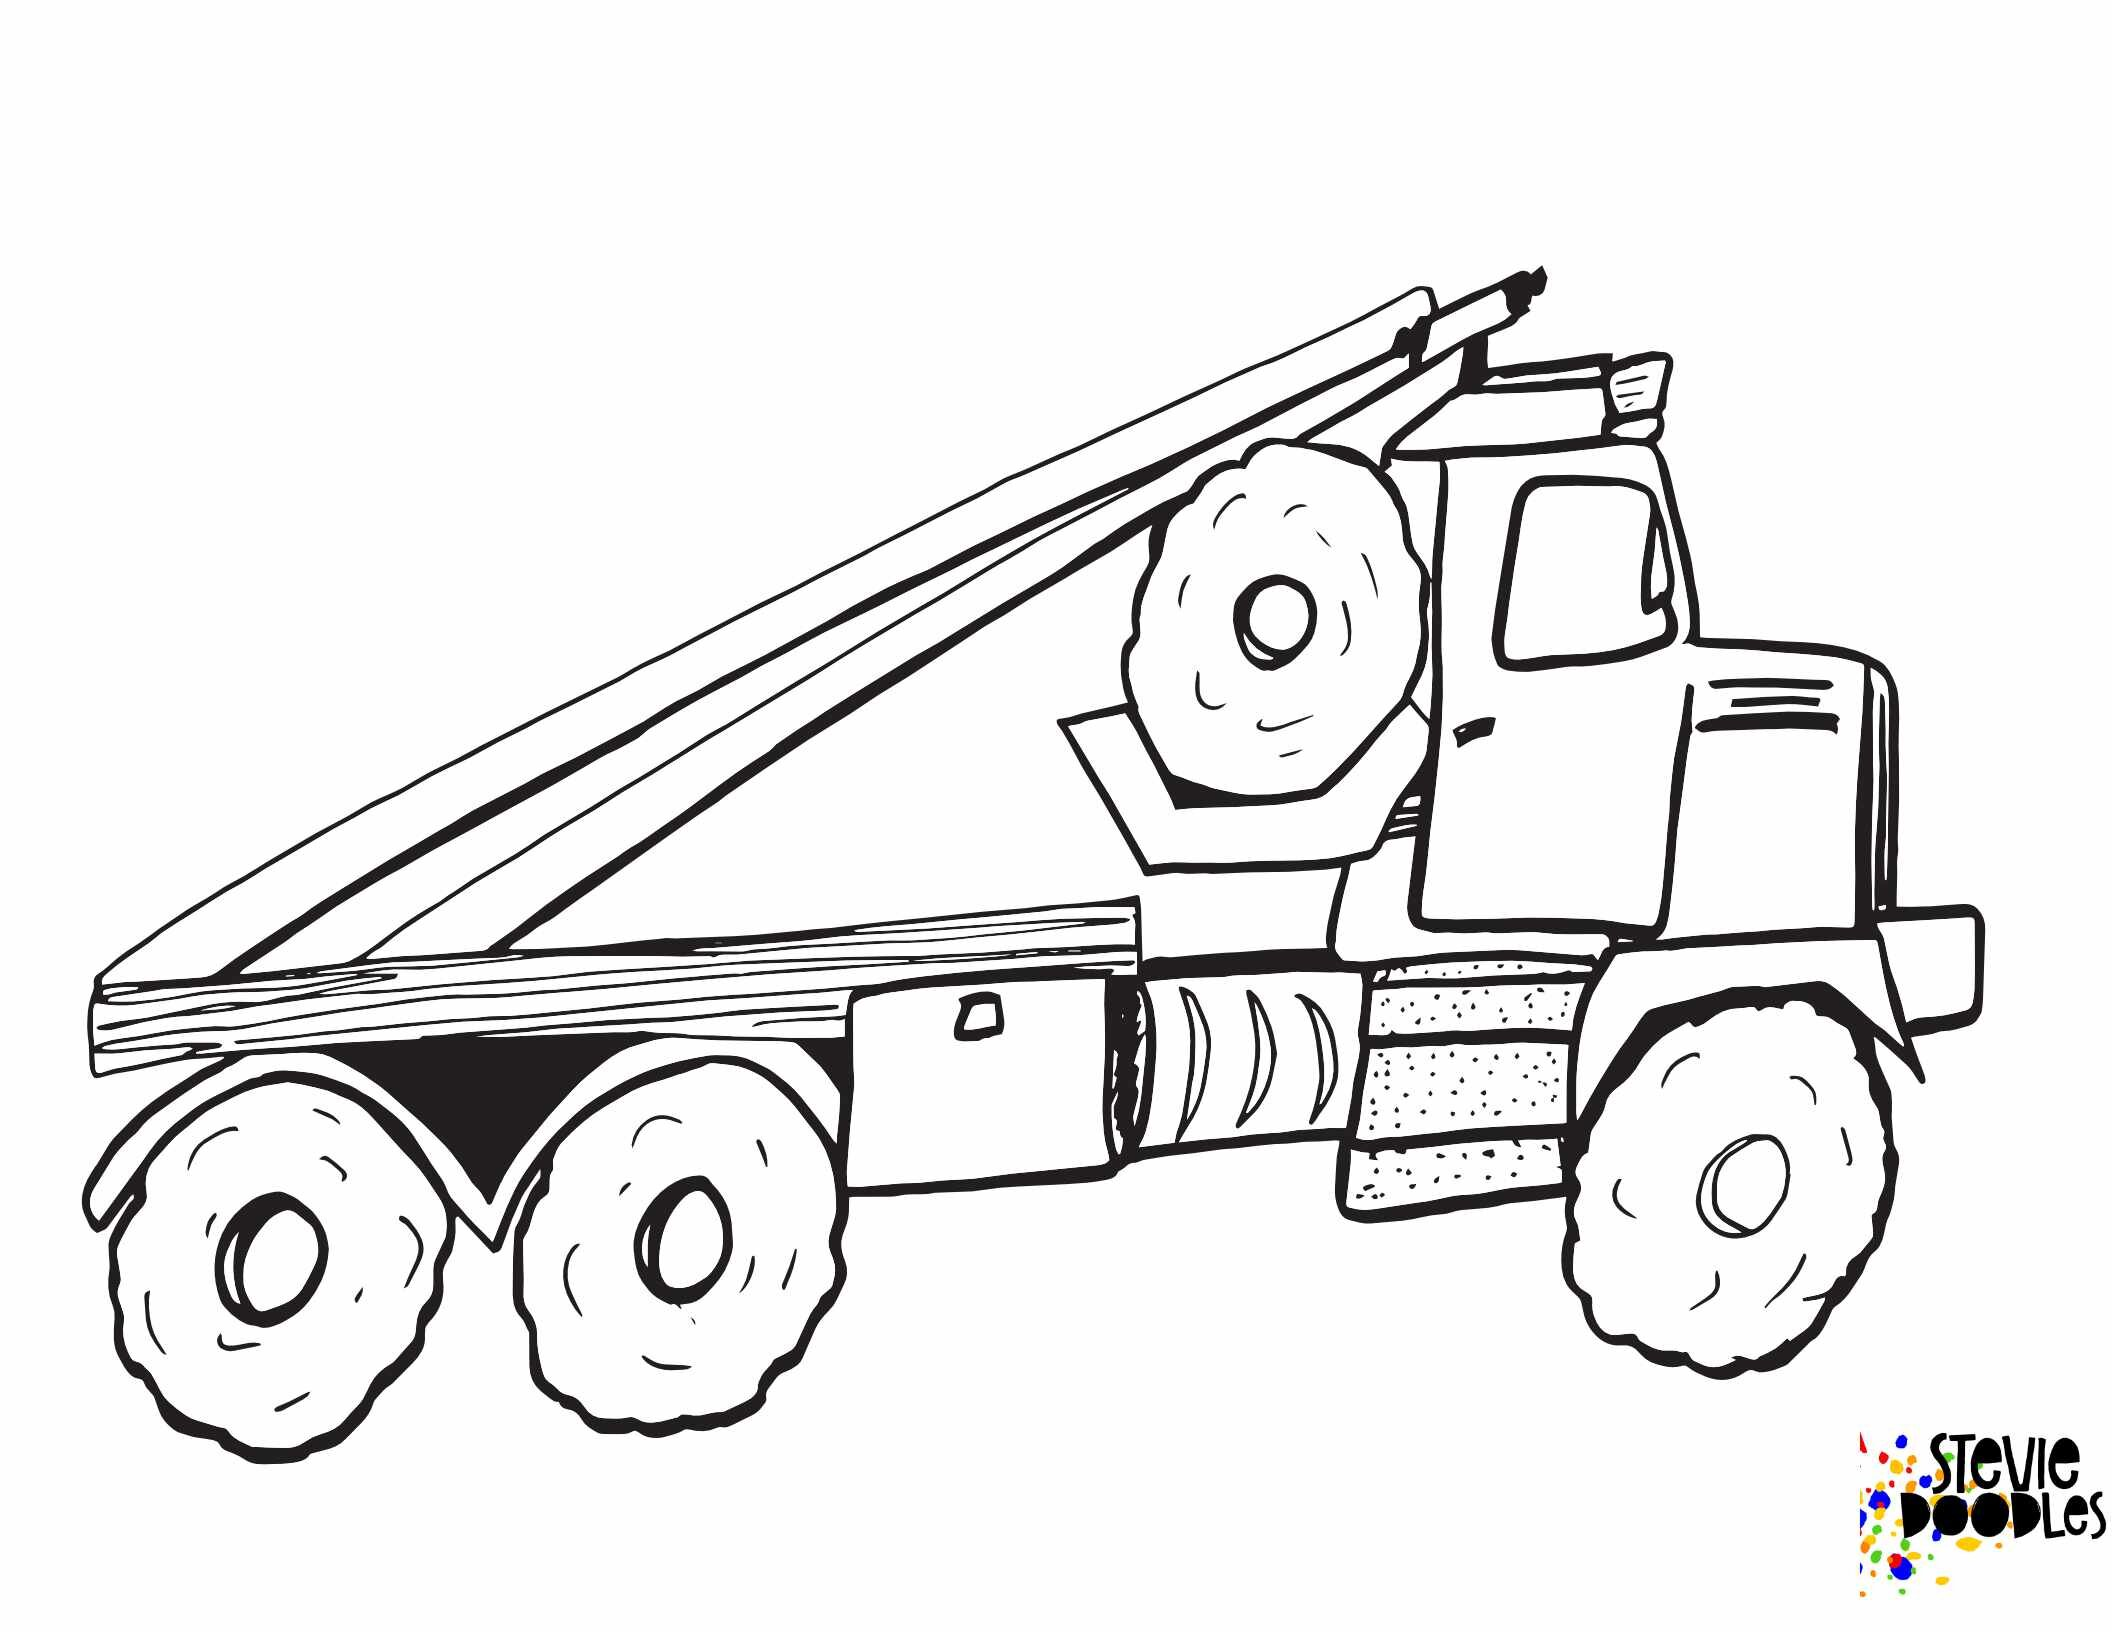 Big Truck A Free Printable Coloring Page 2020 1 Stevie Doodles